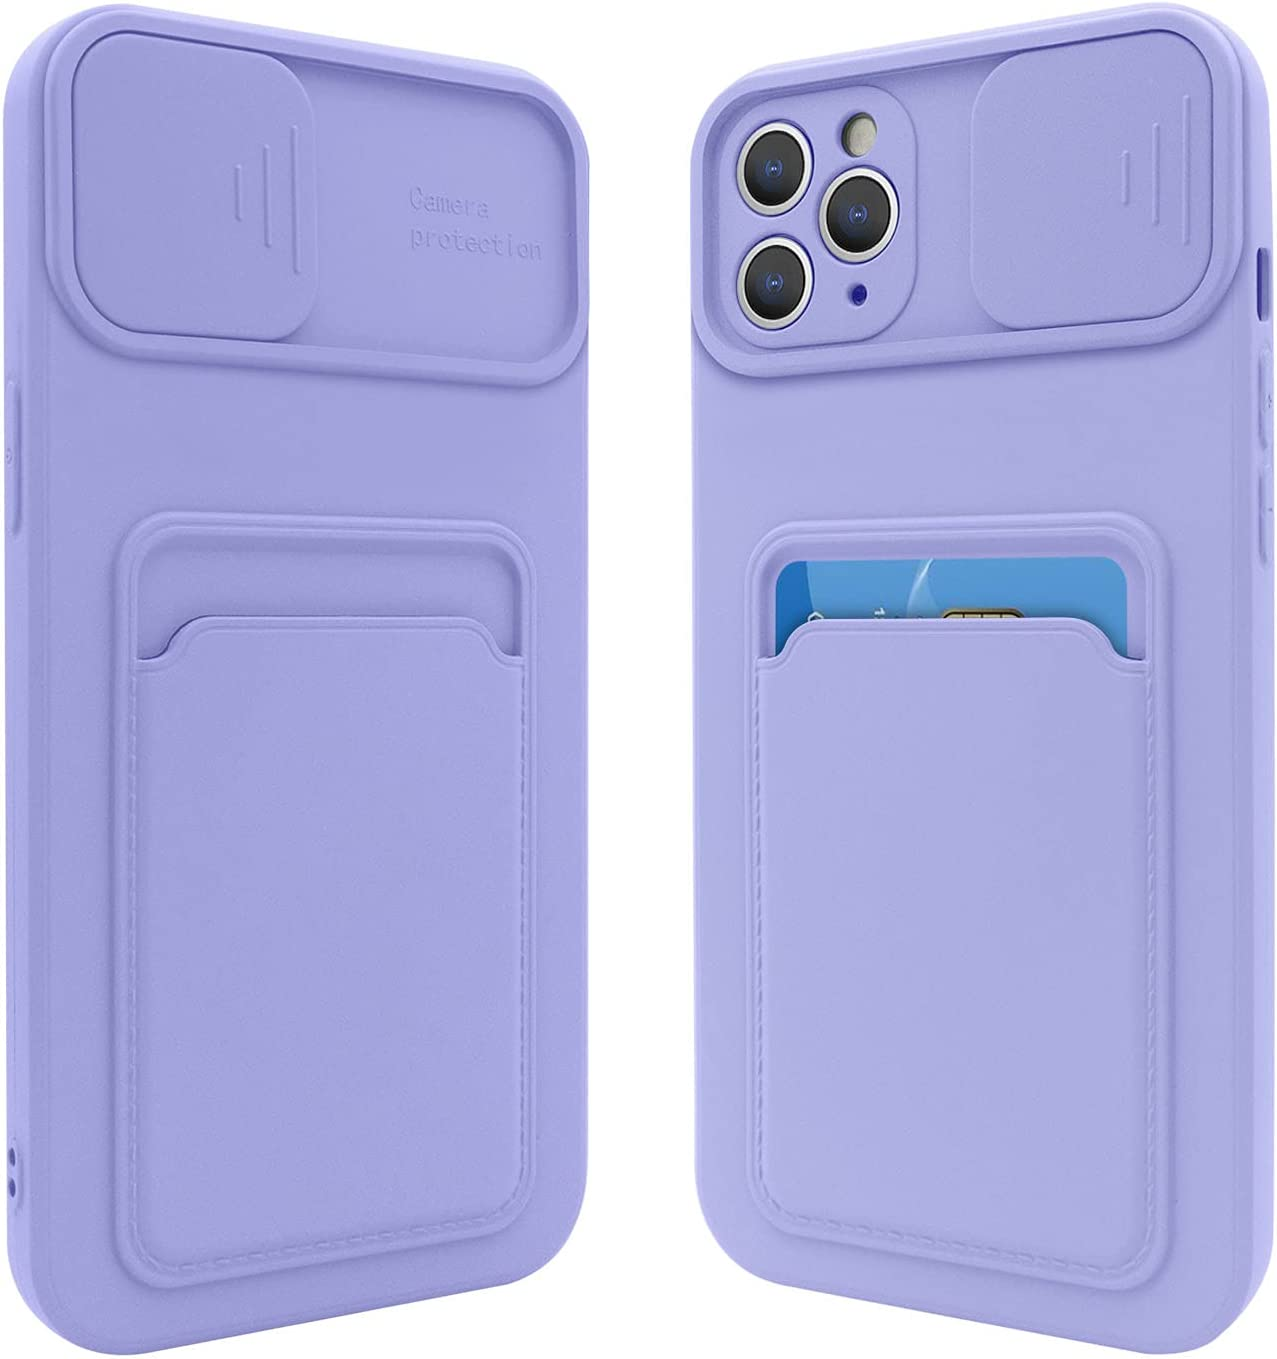 Fsoole iPhone 11 Pro Max Silicone Card Case with Camera Lens Protector, Credit Card Holder Sleeve Shockproof Cover for 6.5 Inch iPhone 11 Pro Max (Purple)